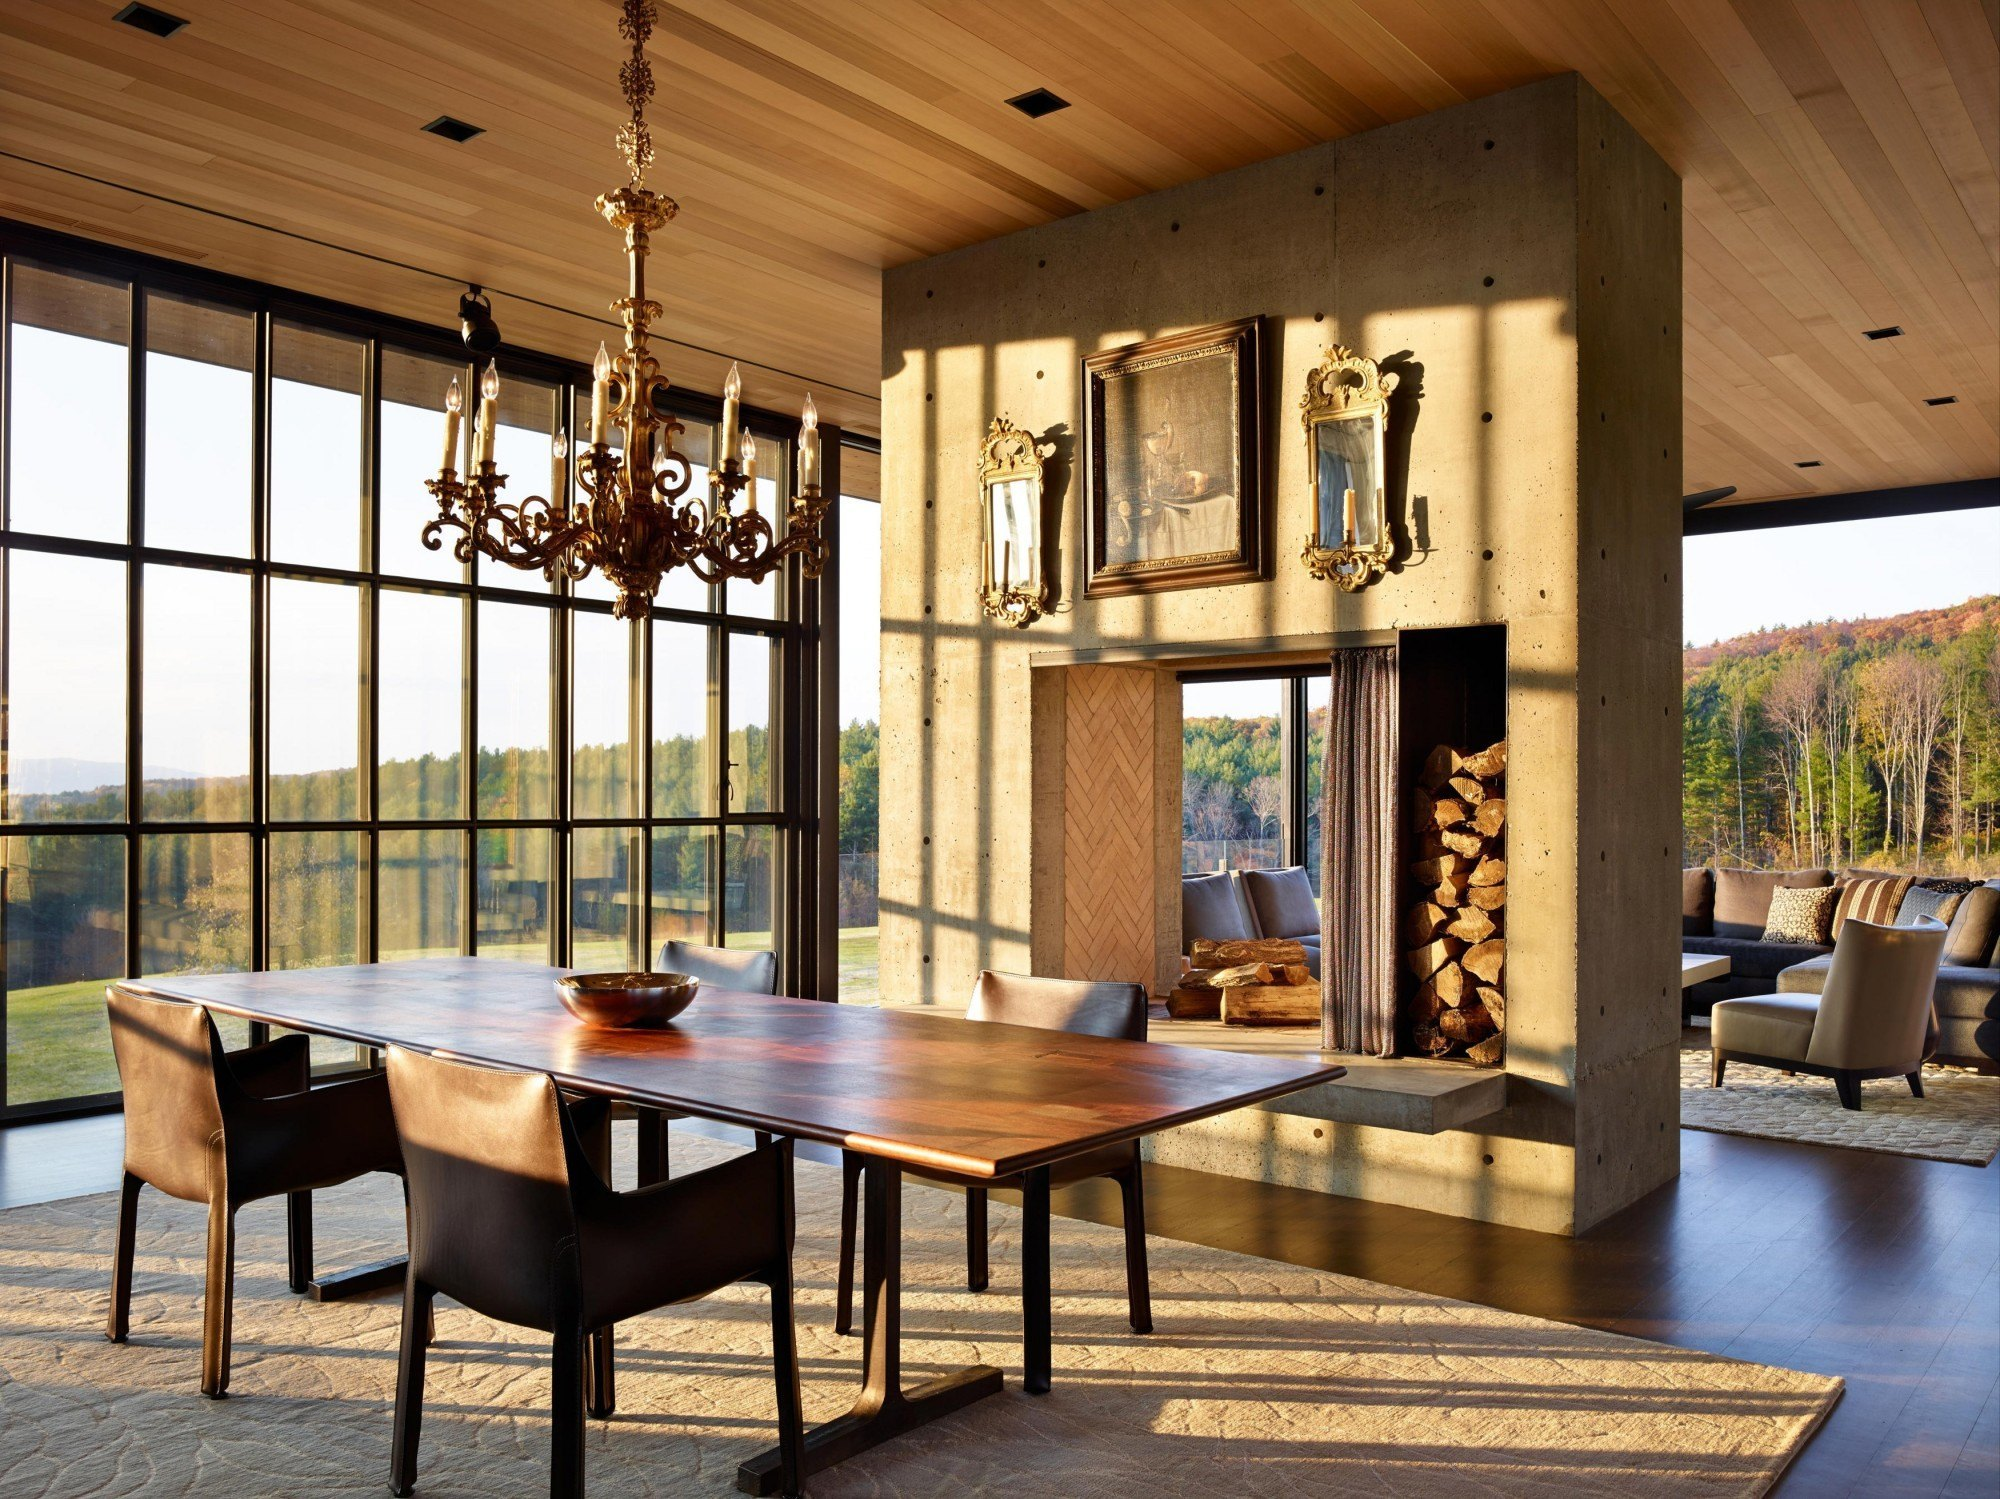 As With All The Olson Kundig Properties That Weve Encountered Here At Coolector HQ Interior Design Is Just Great Exterior And So It Has